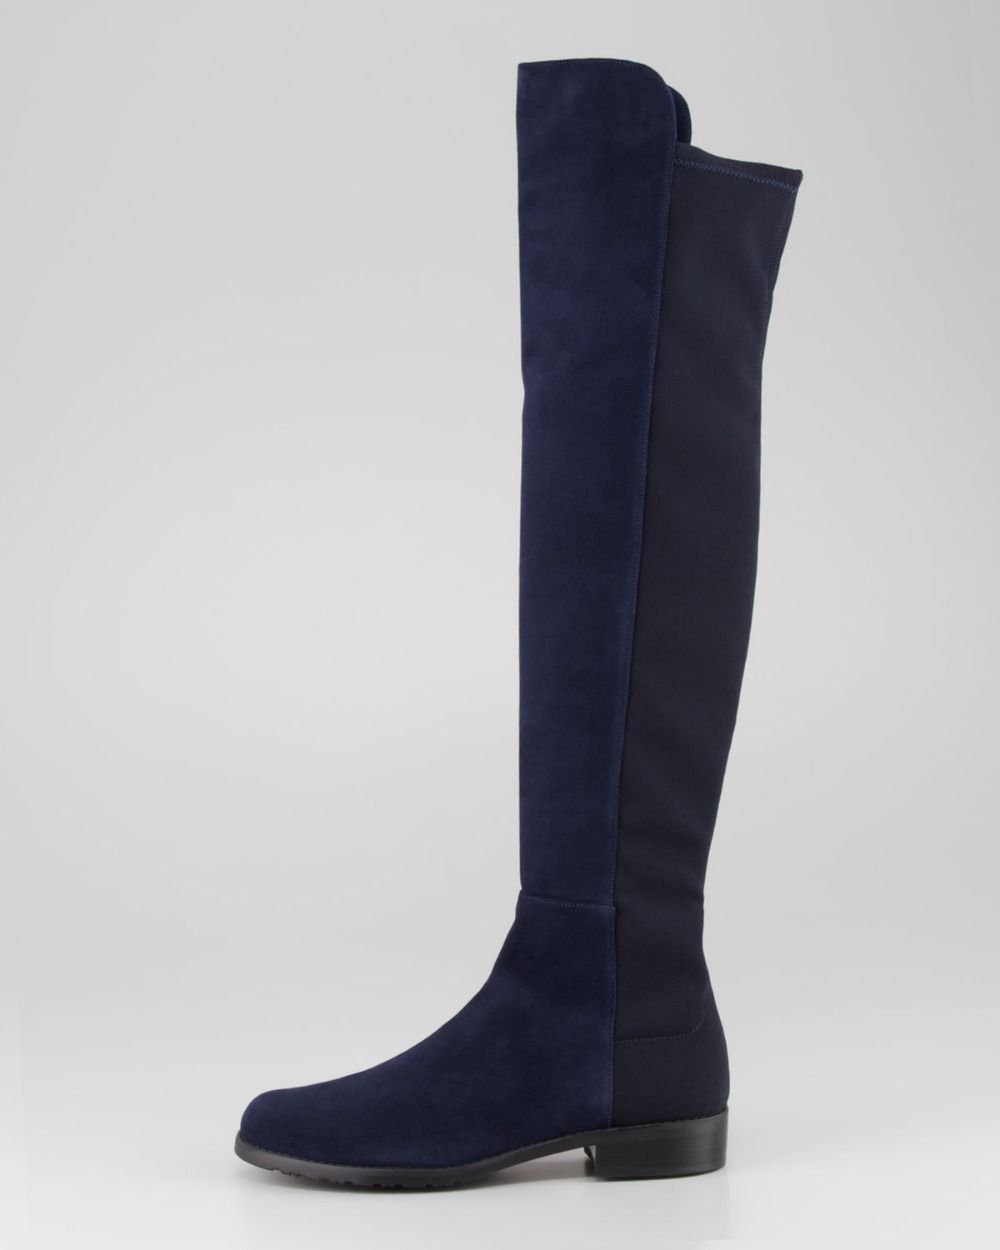 Extended calf boots